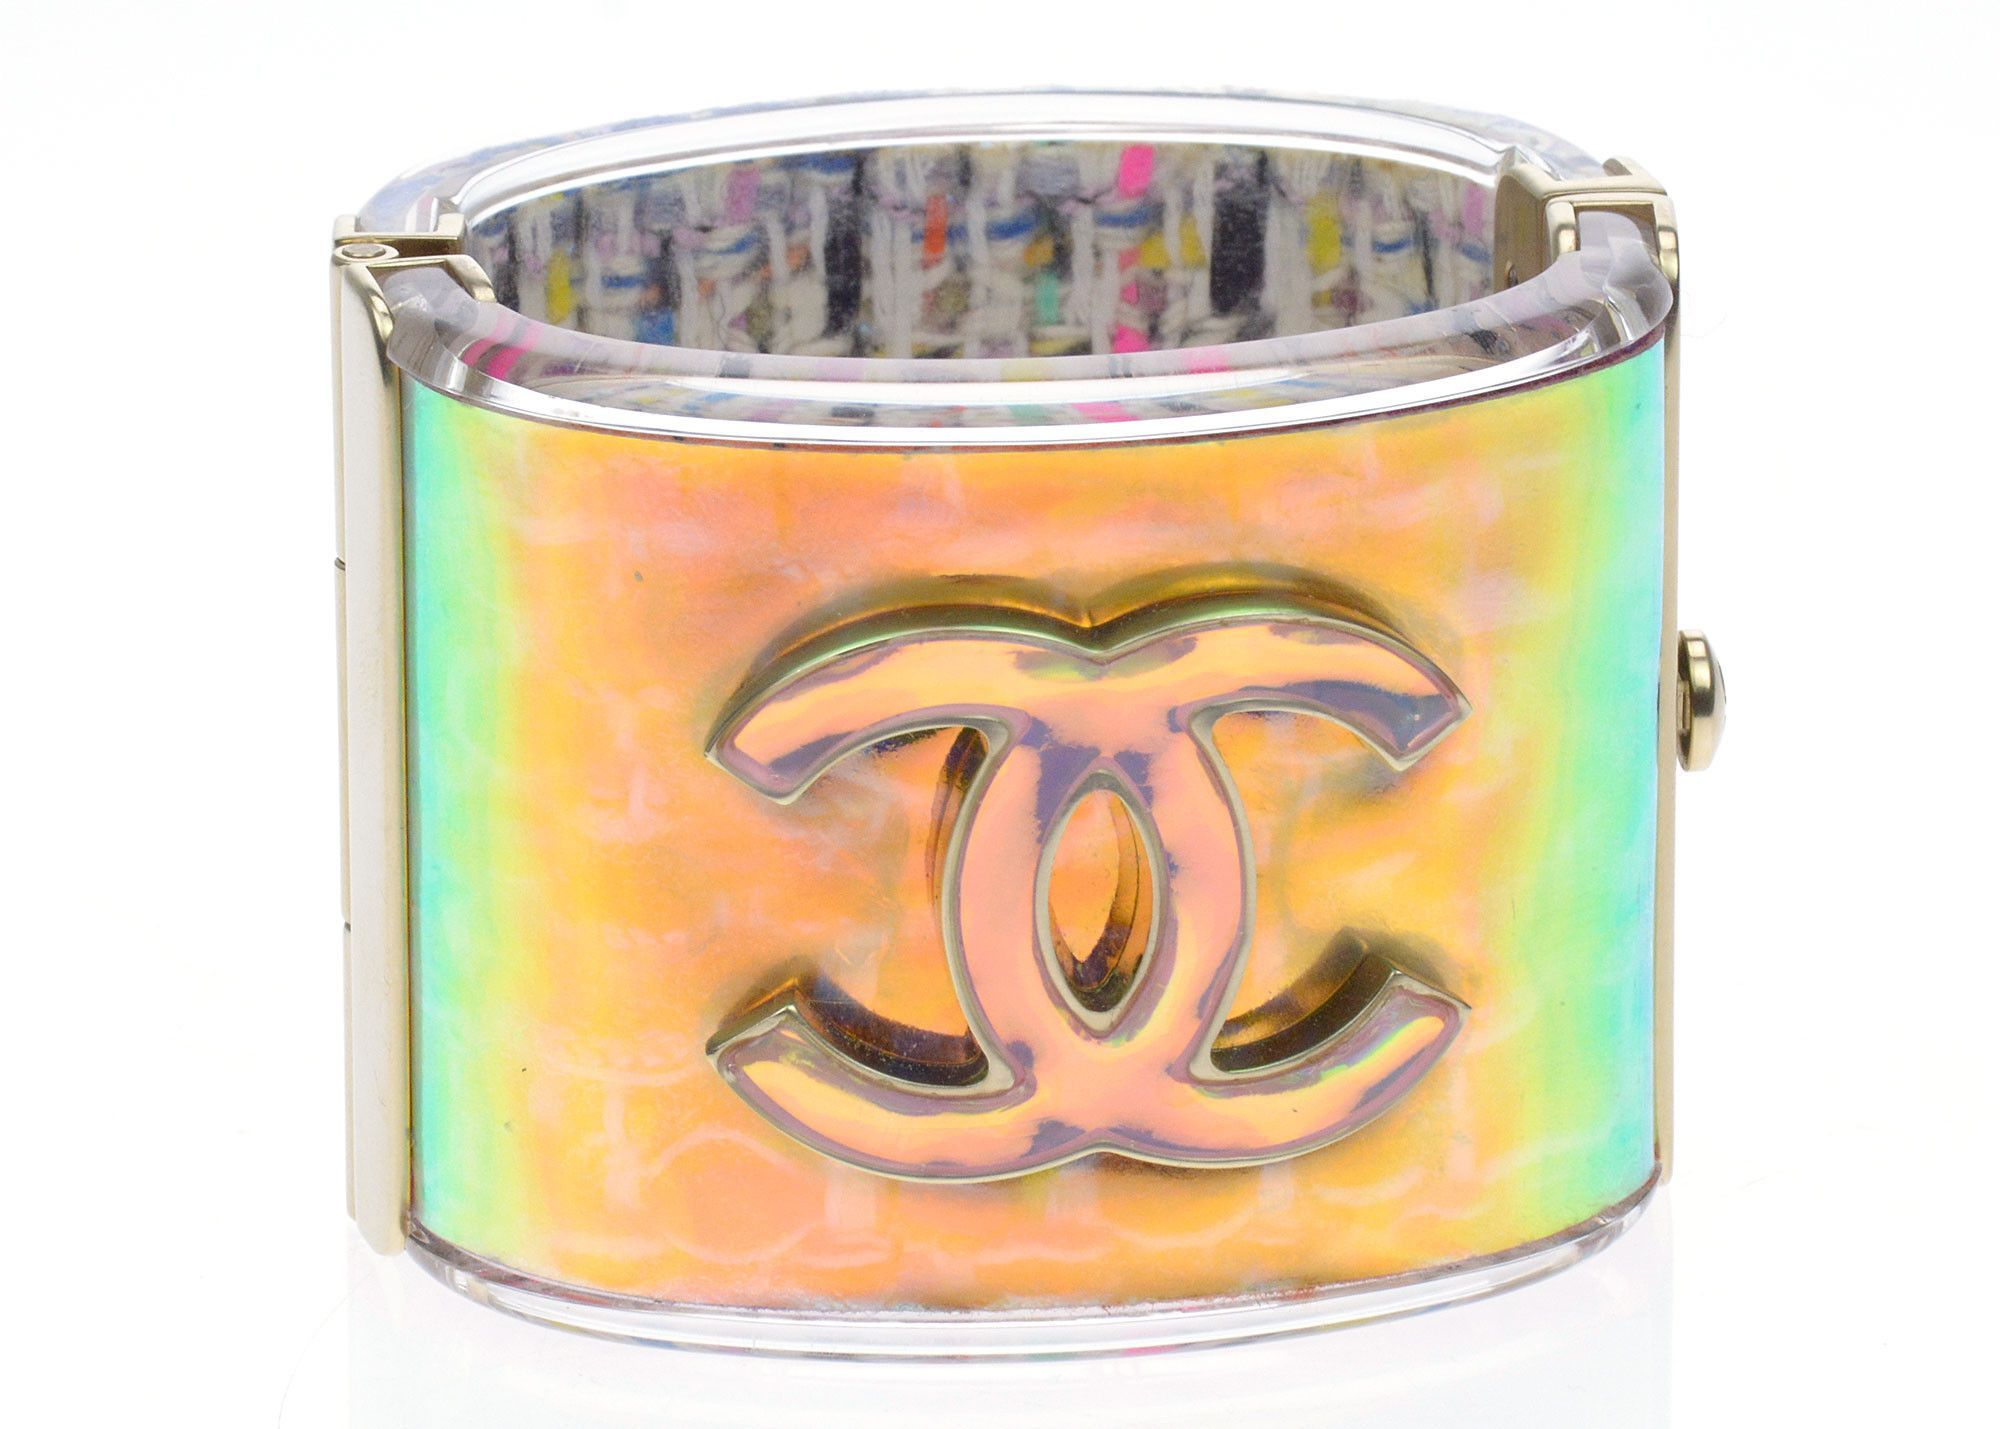 Chanel Multicolor Hologram Cuff is absolutely stunning! Featured in iridescent acrylic, this hologram cuff features an interlocking CC logo on the front and classic tweed printed on the interior. This